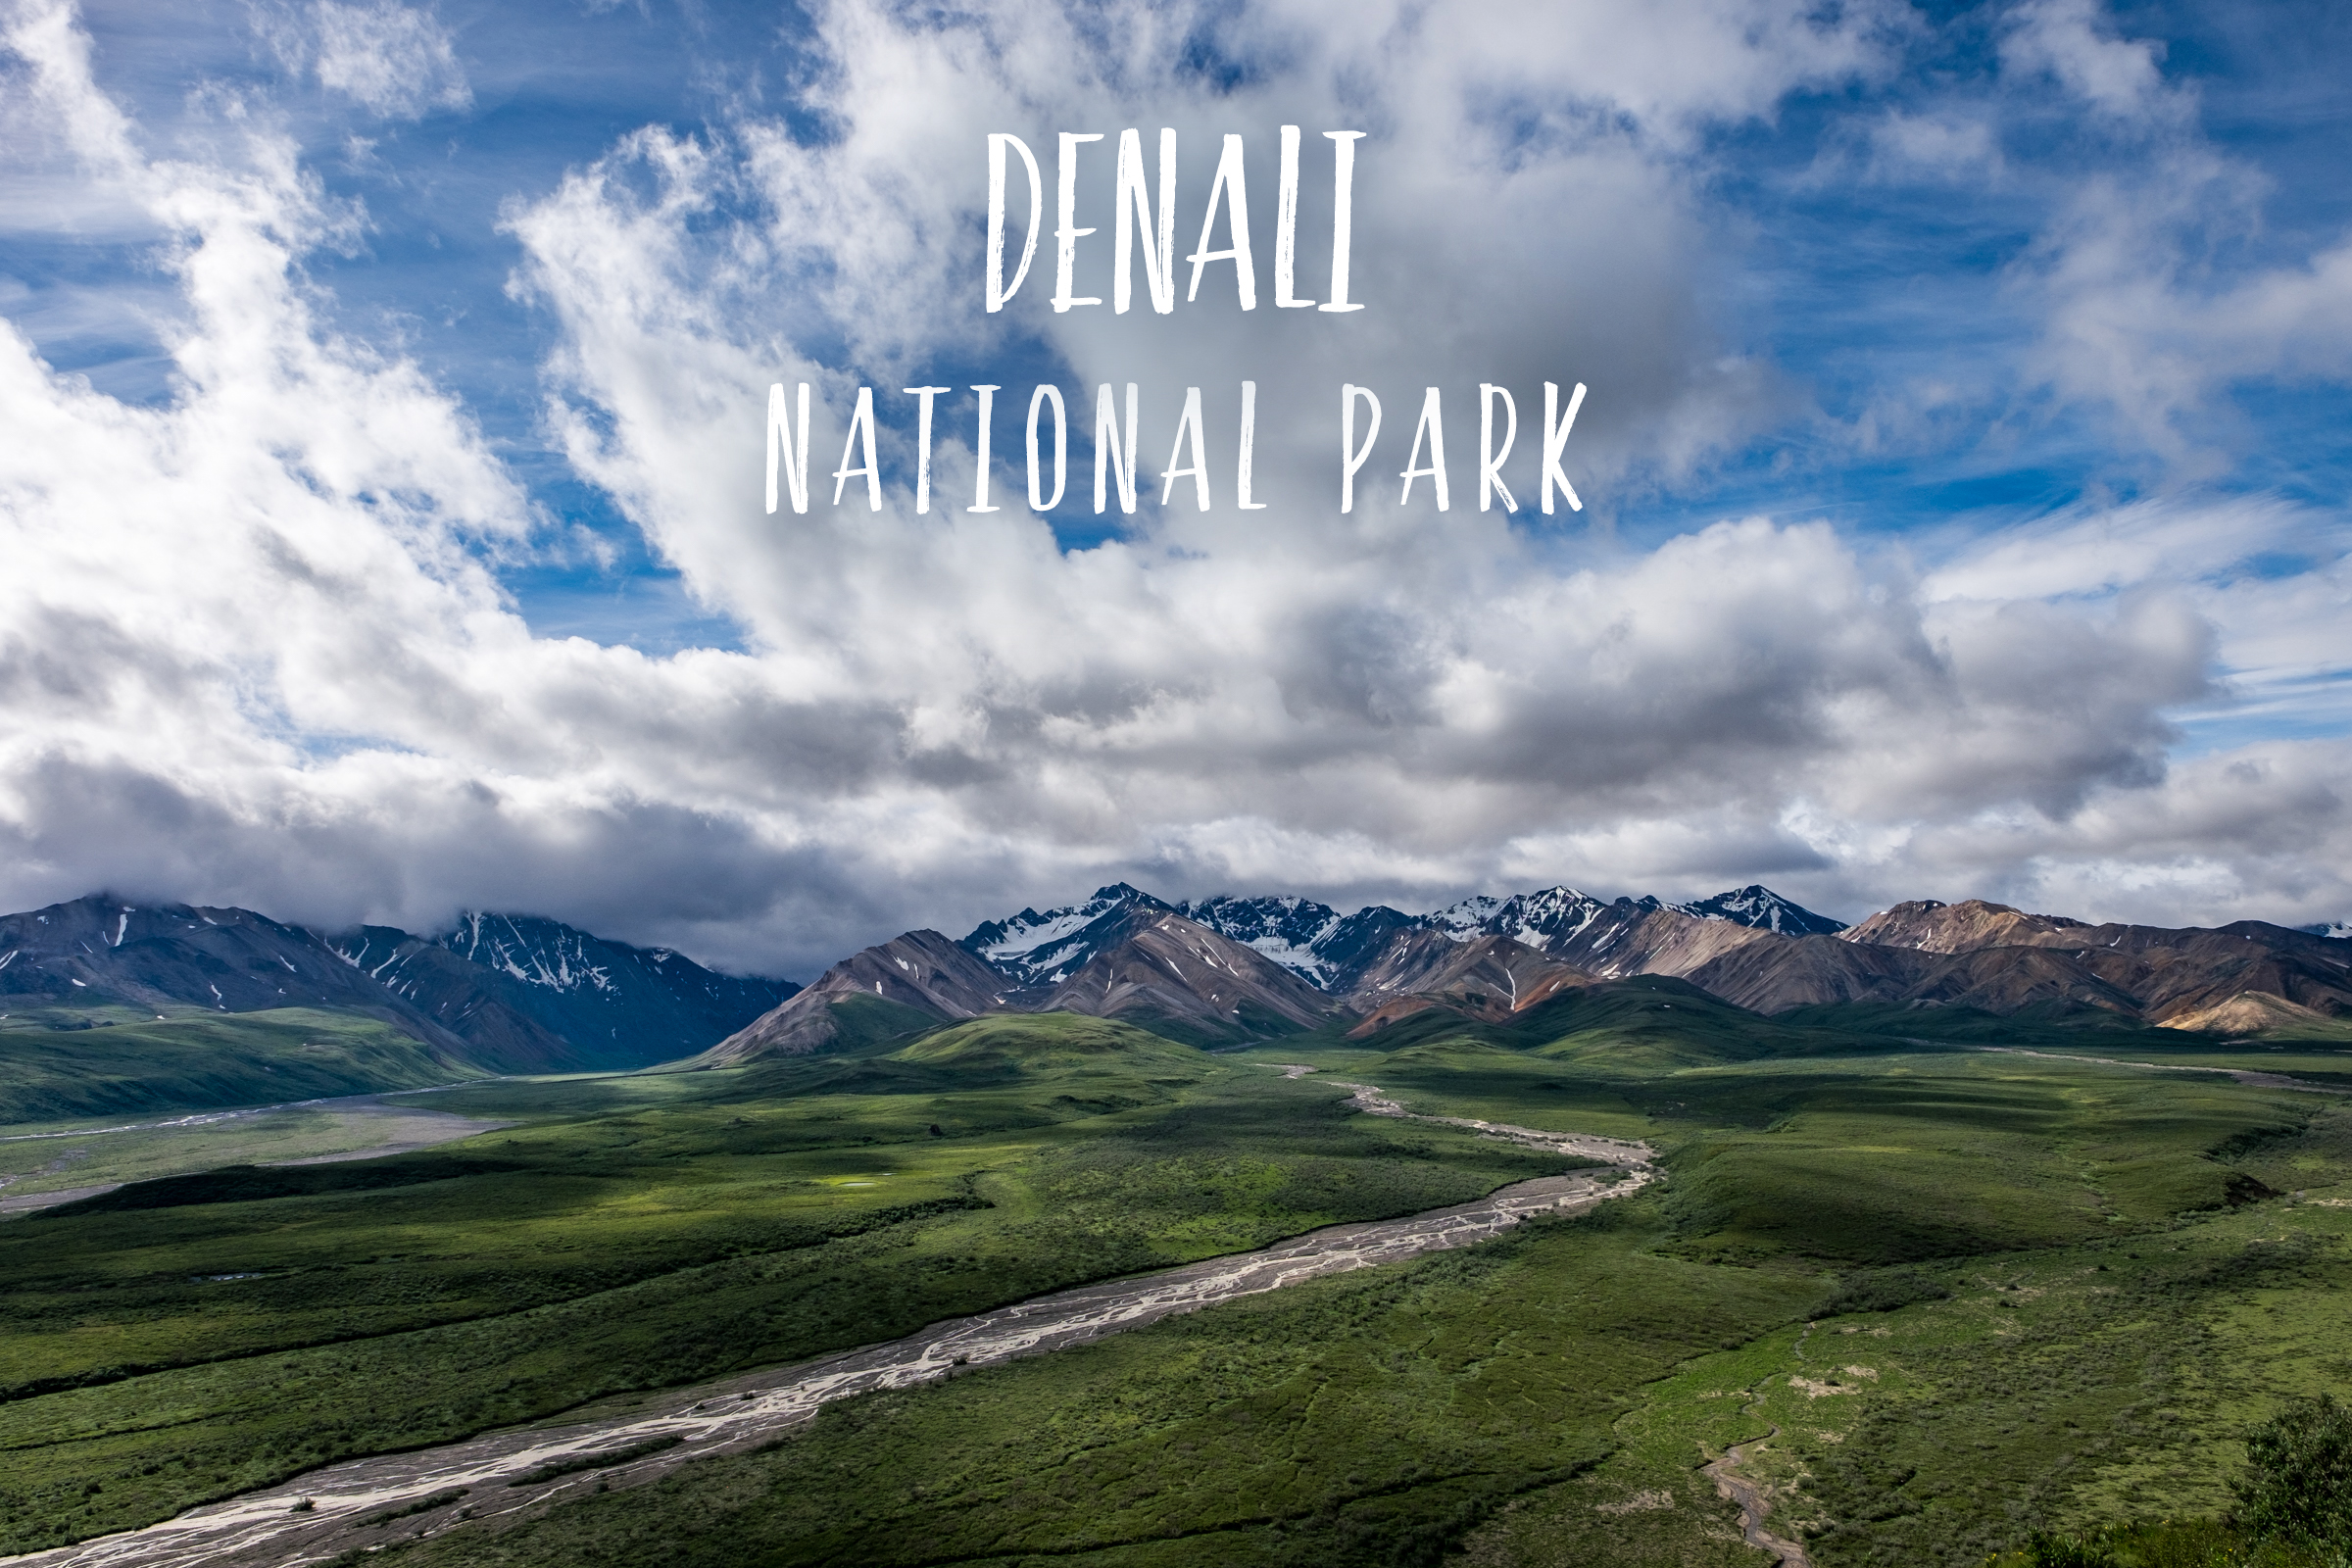 Park 33/59: Denali National Park in Alaska